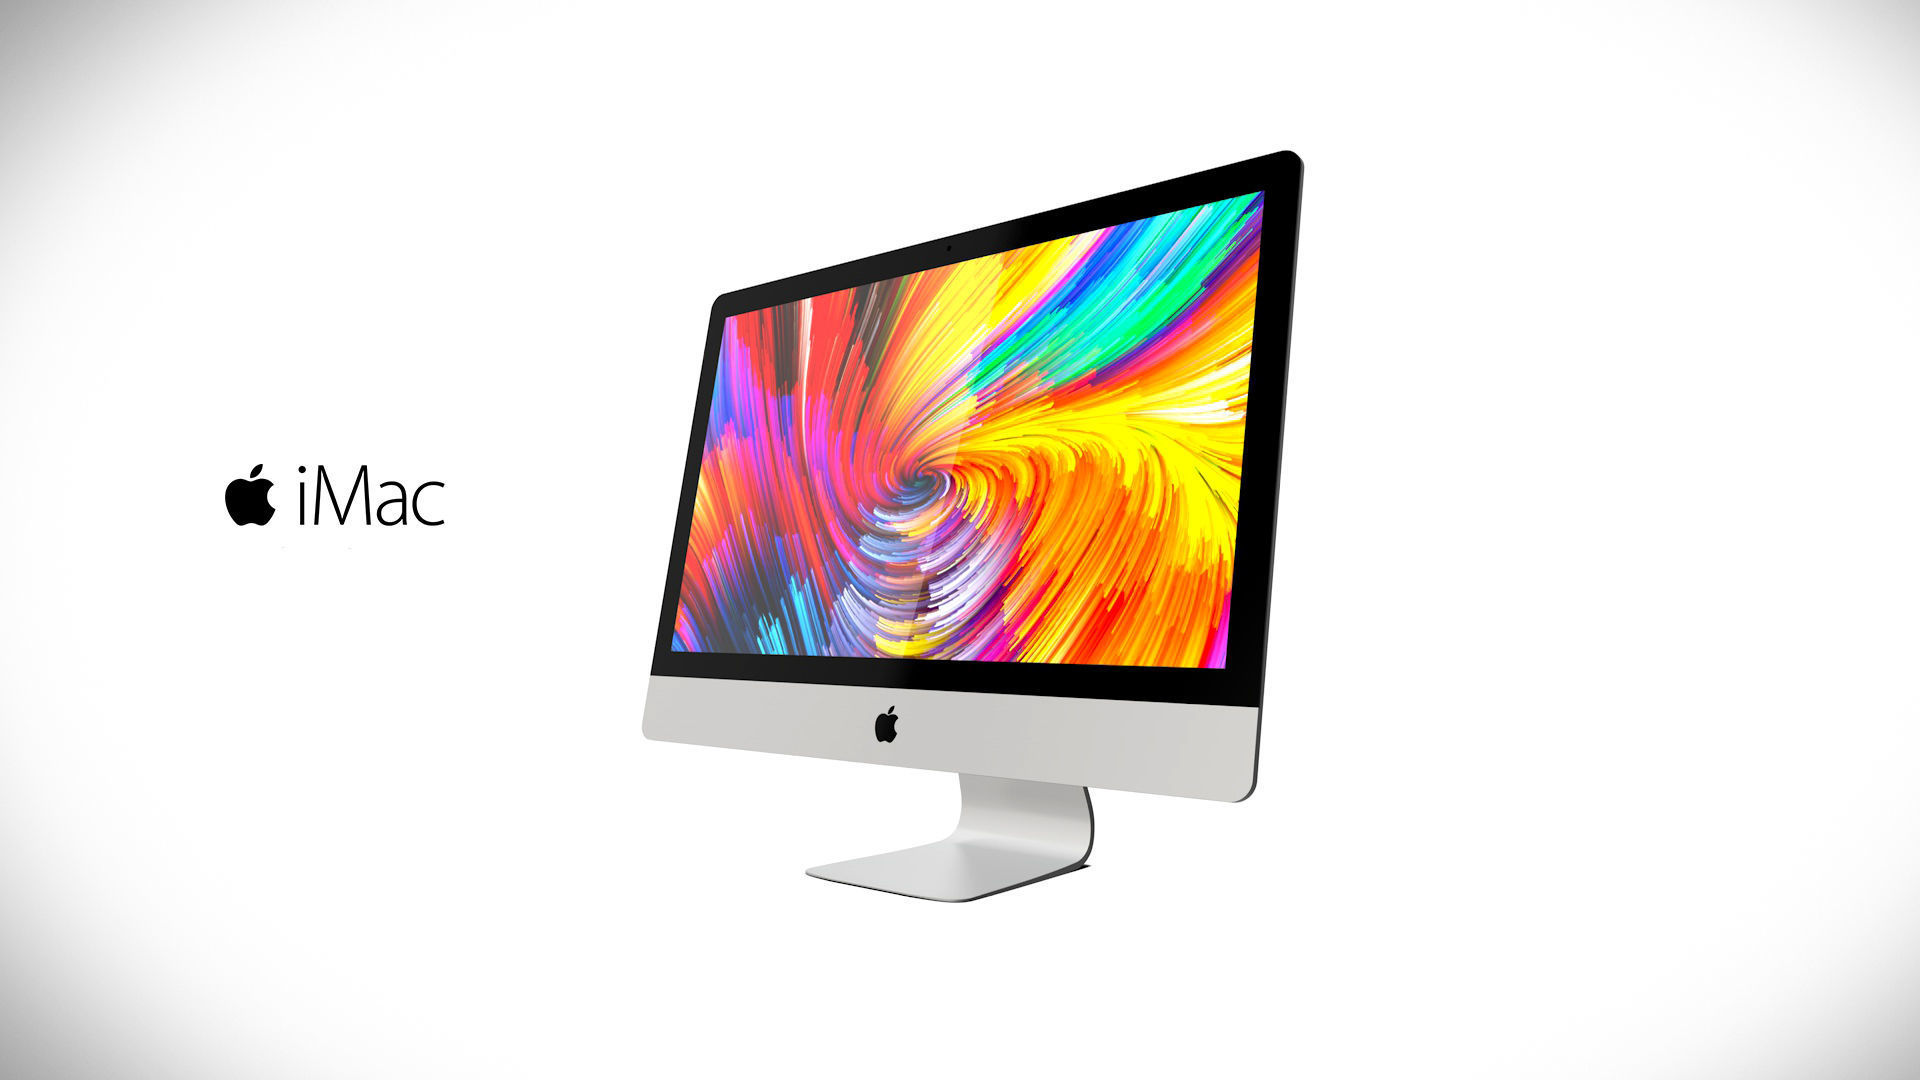 Imac 27 2017 3D model for 3Ds Max and Cinema 4D